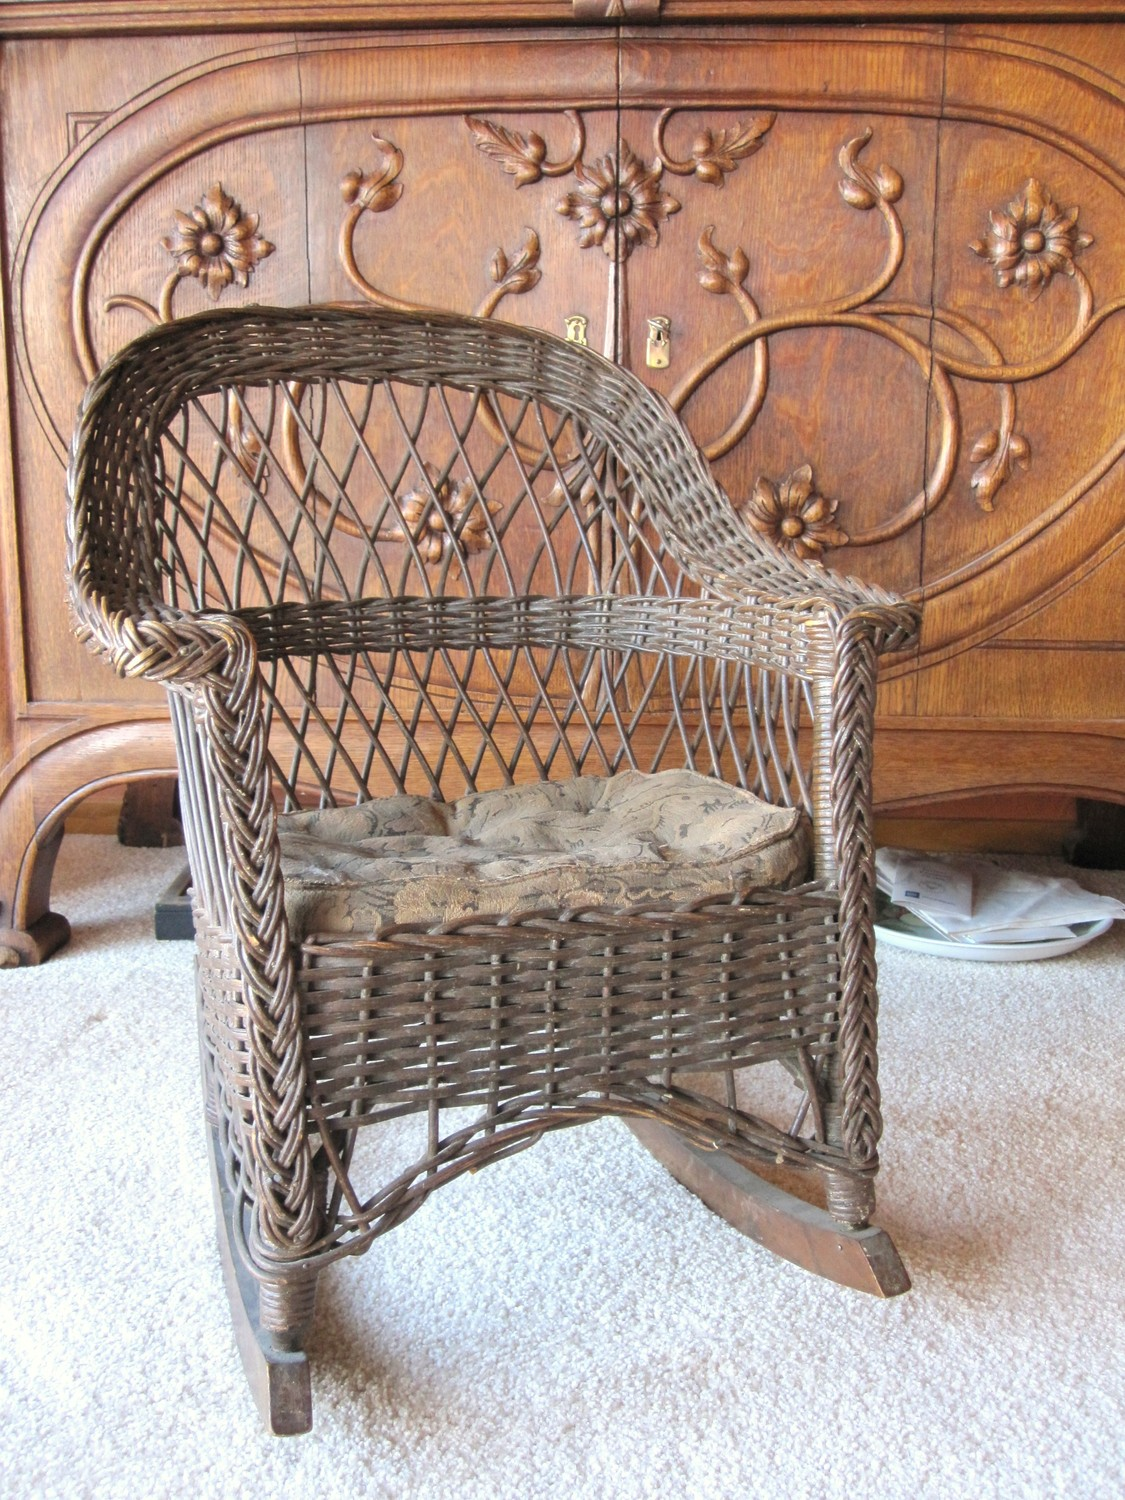 Antique Wicker Rocking Chair Child's Rocking by AmeliaRoseVintage.